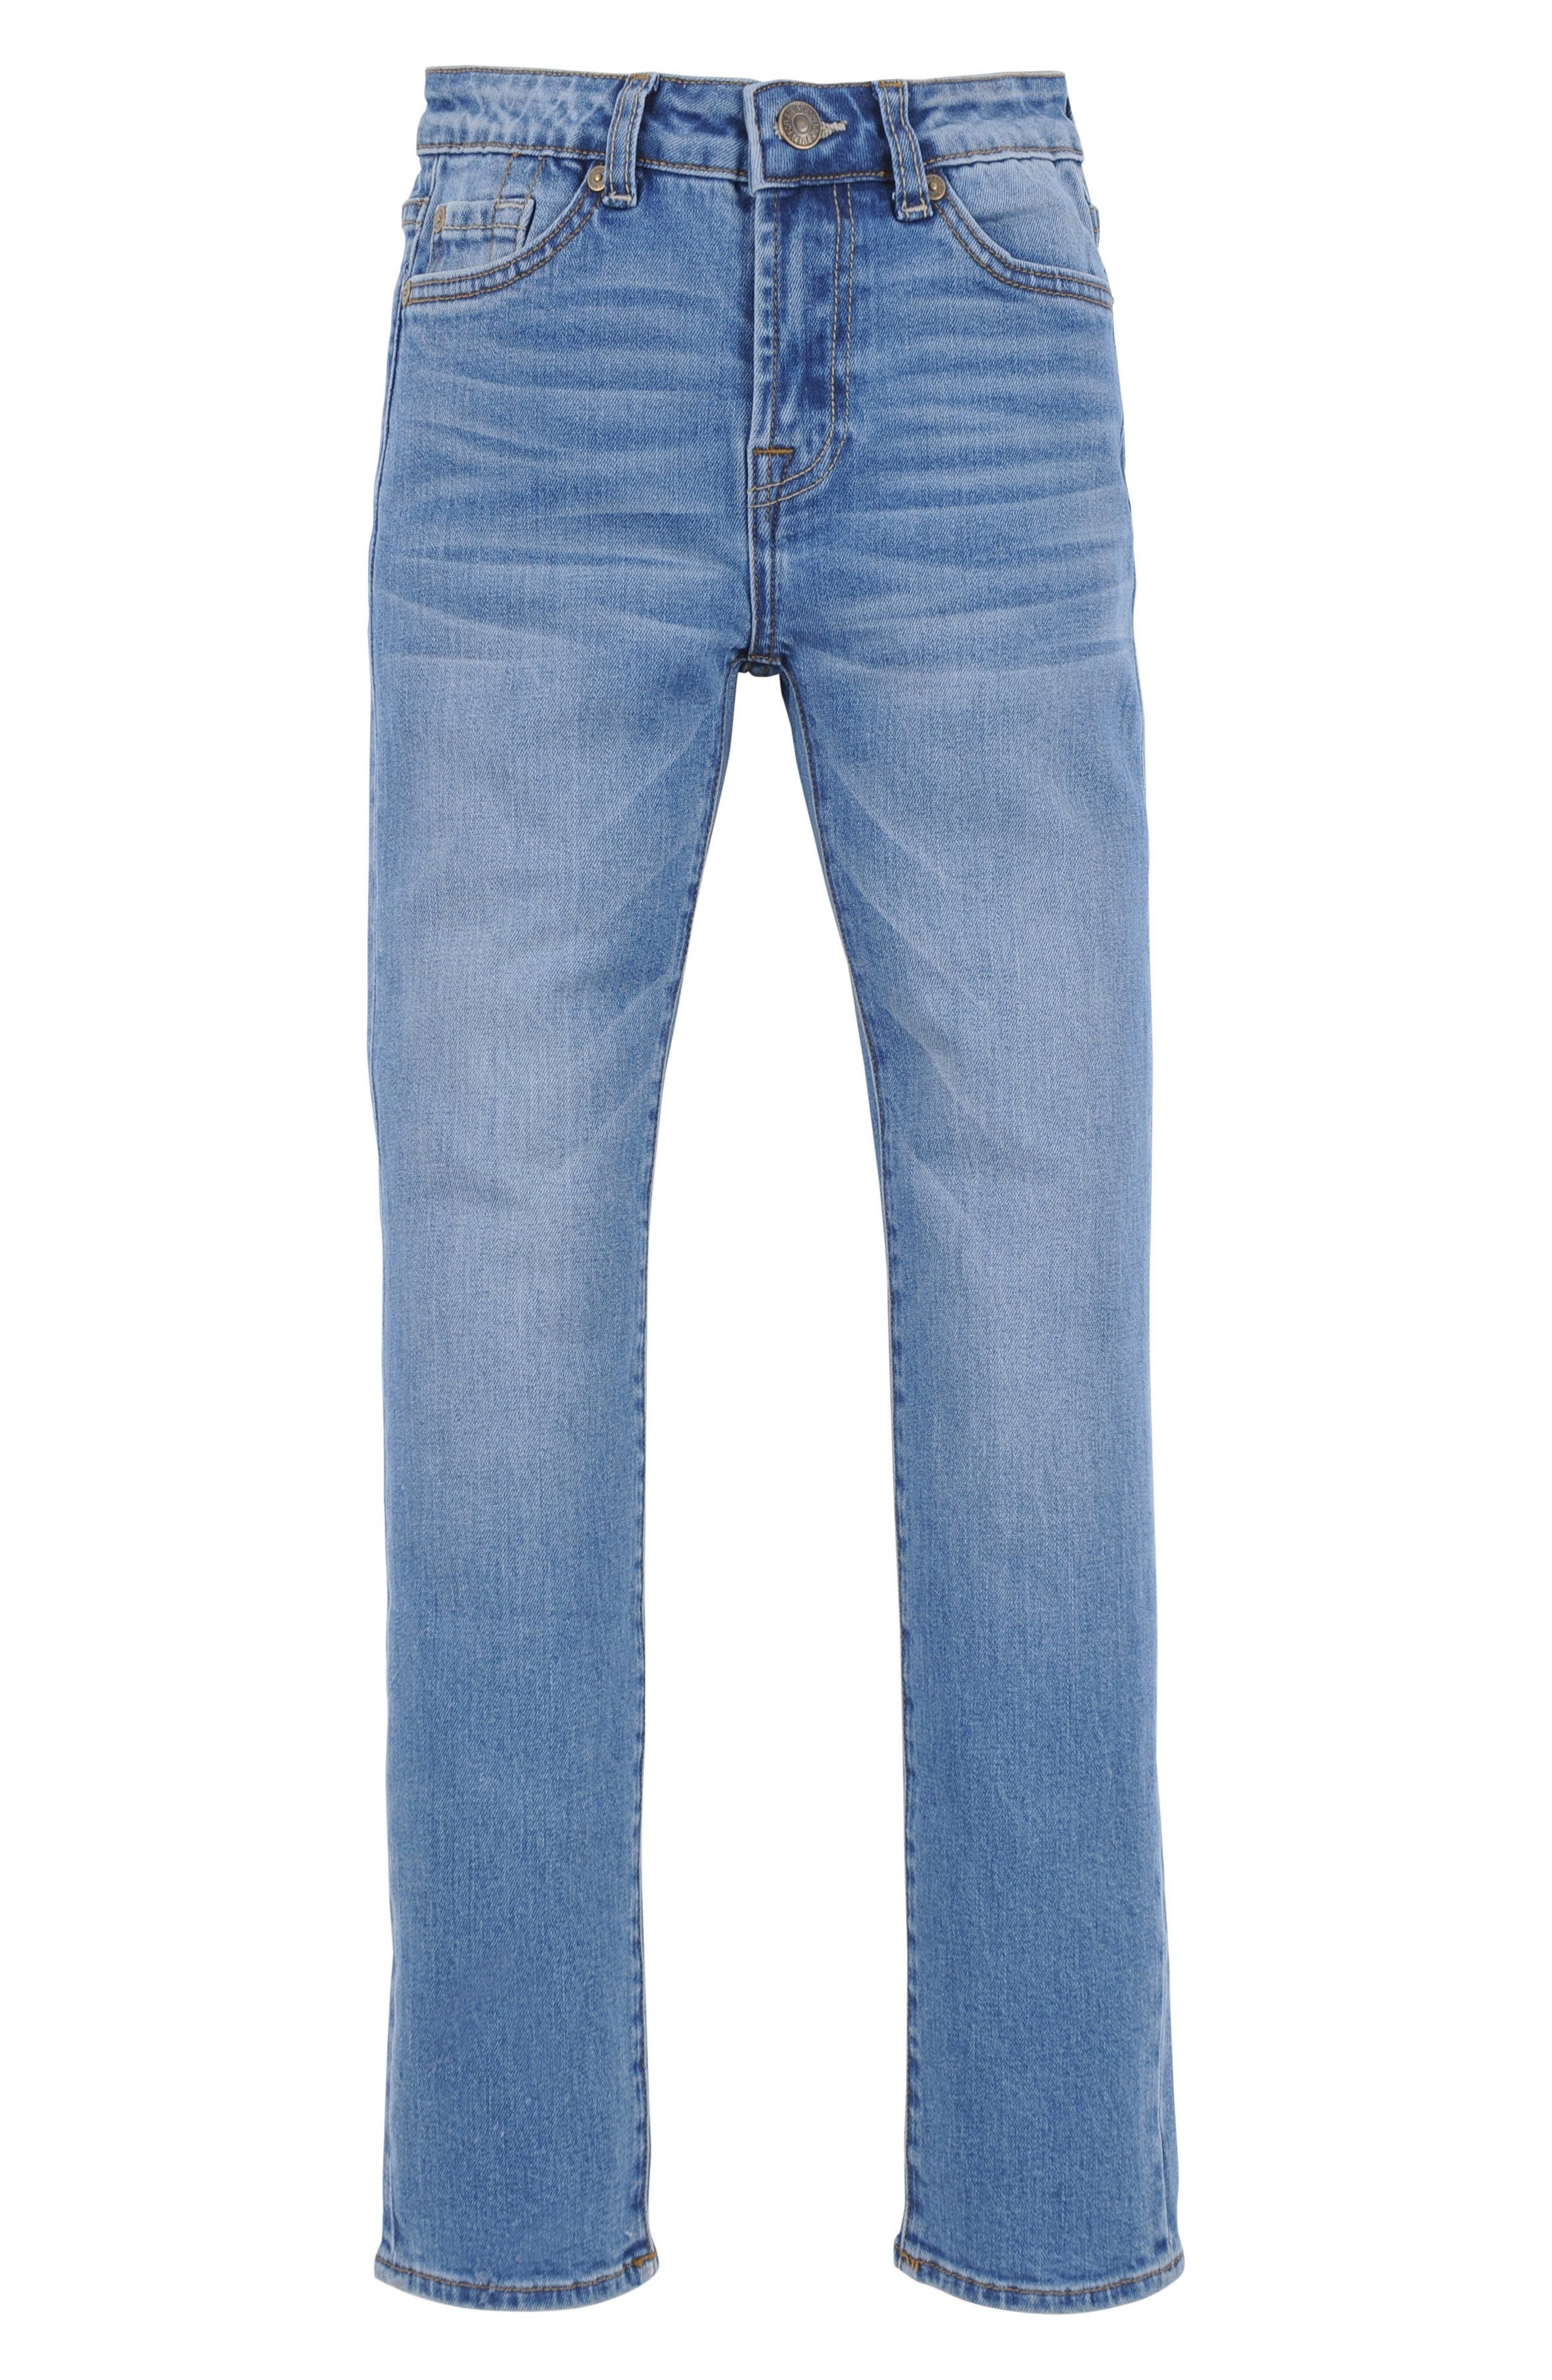 Slimmy Foolproof Jeans,                         Main,                         color, Solace